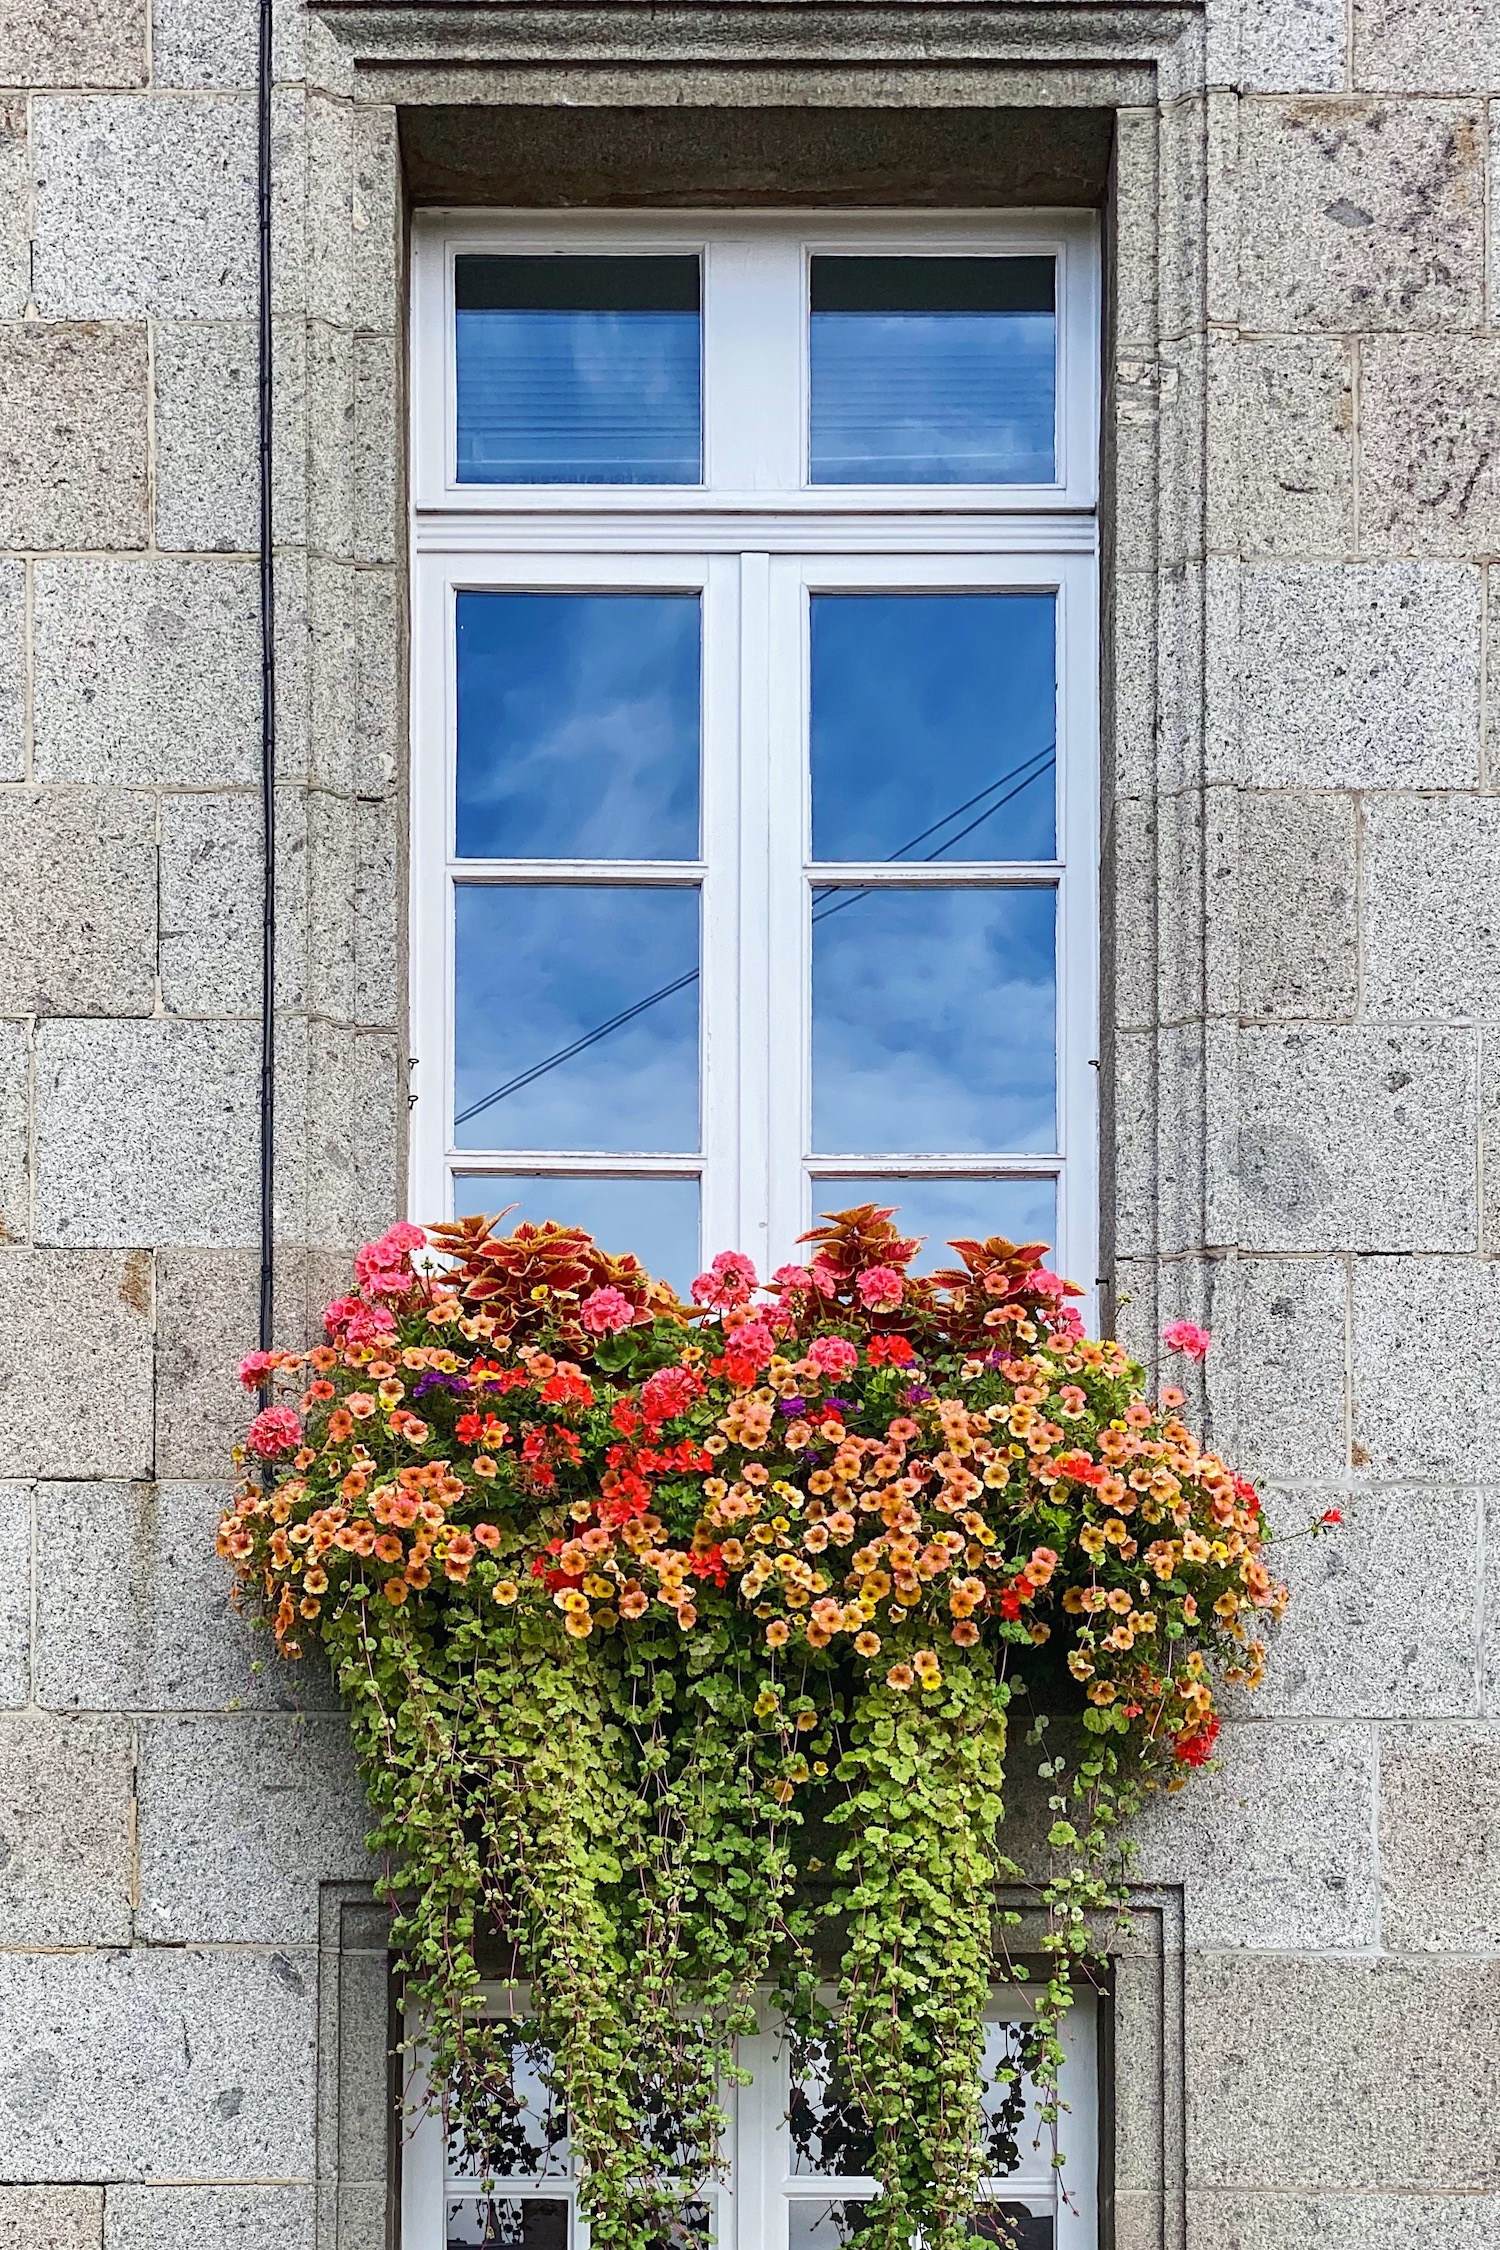 normandy weekend trip with window boxes in Avranches